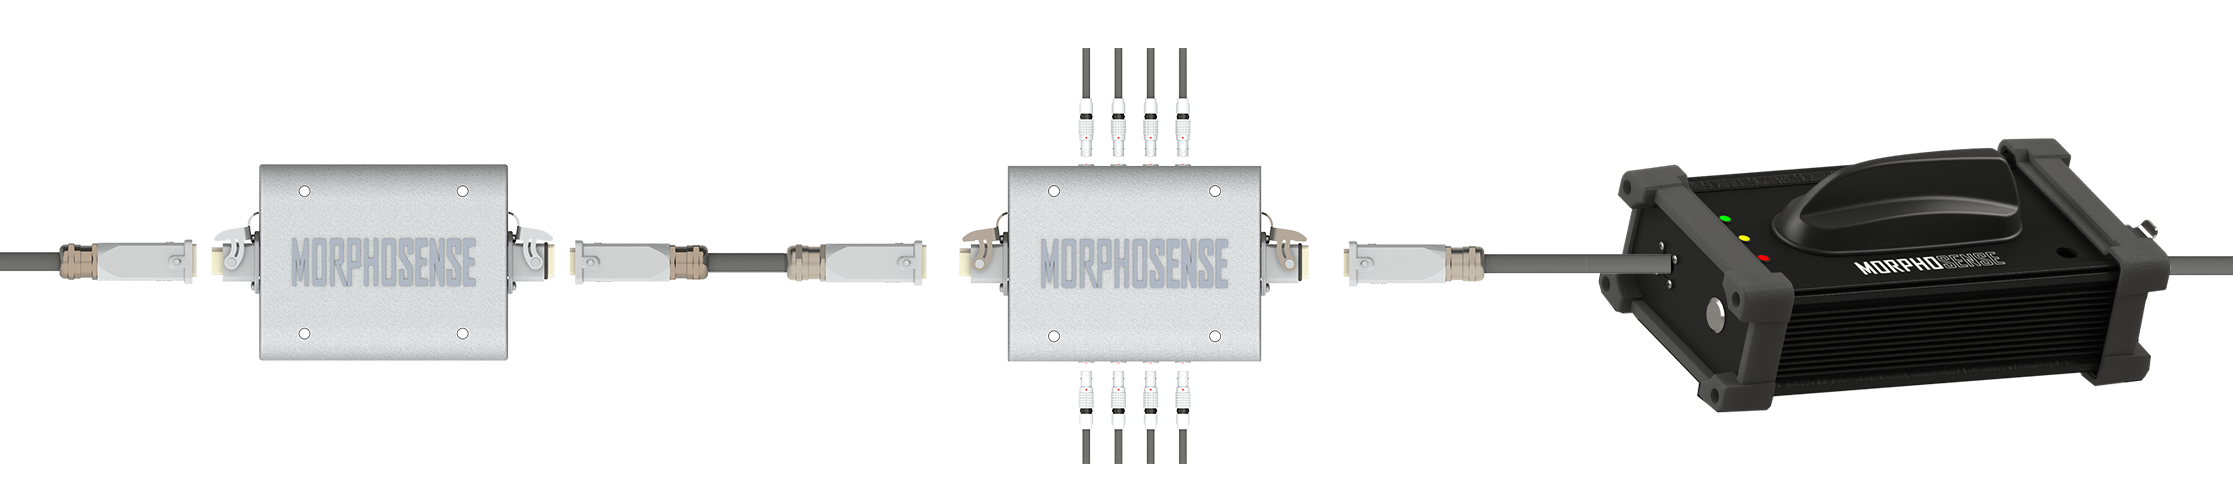 https://morphosense.com/morphosense-indicators/?lang=fr